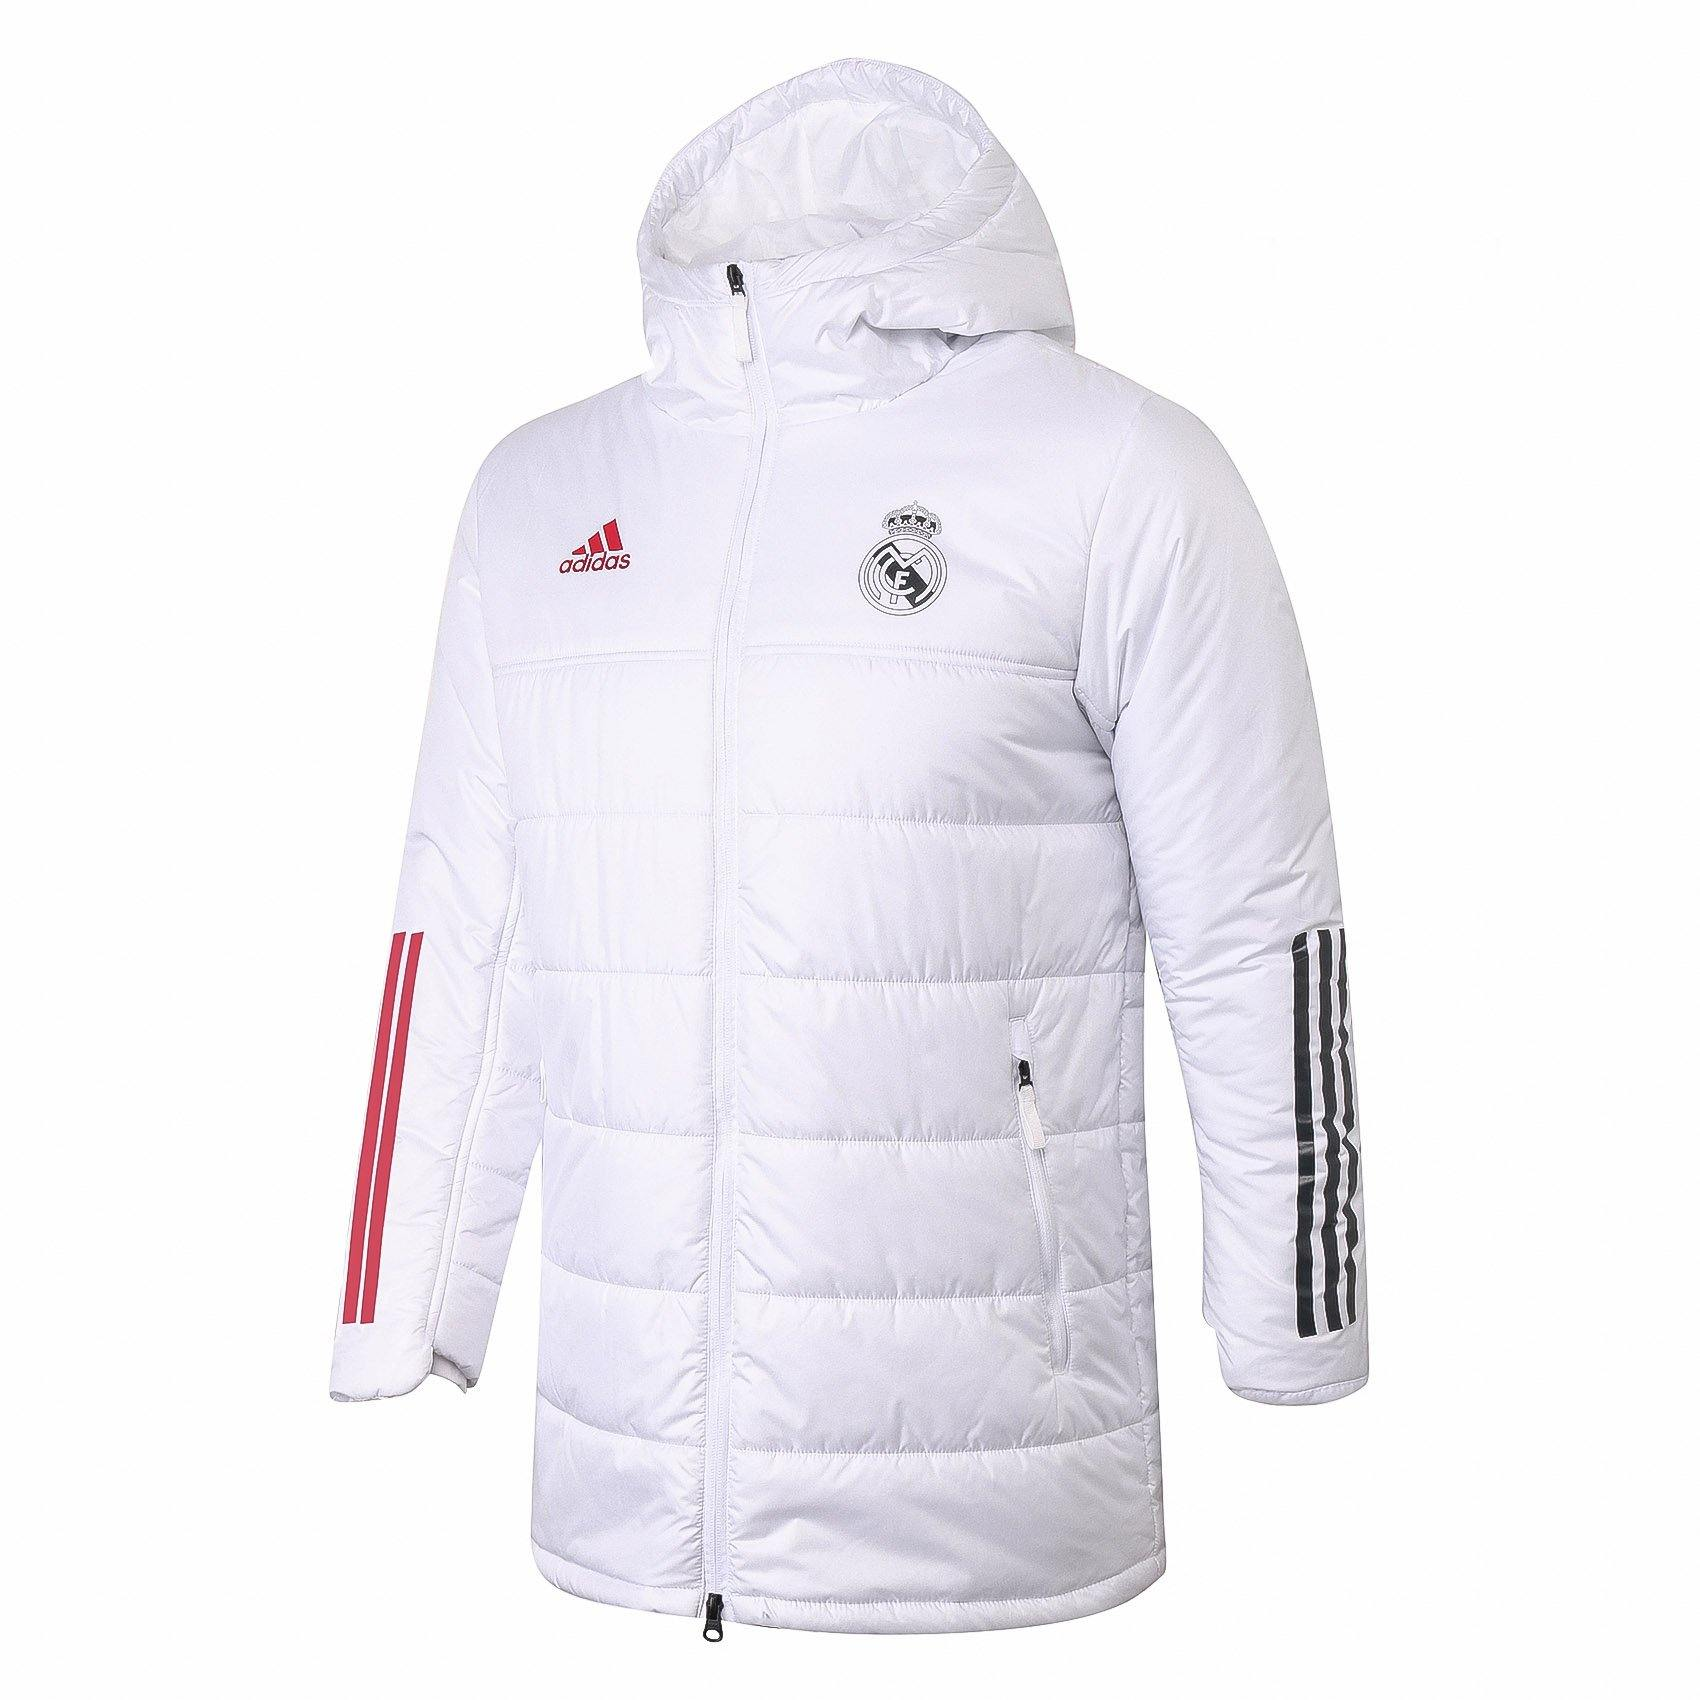 DOUDOUNE REAL MADRID ADIDAS BLANCHE / ROUGE 2021